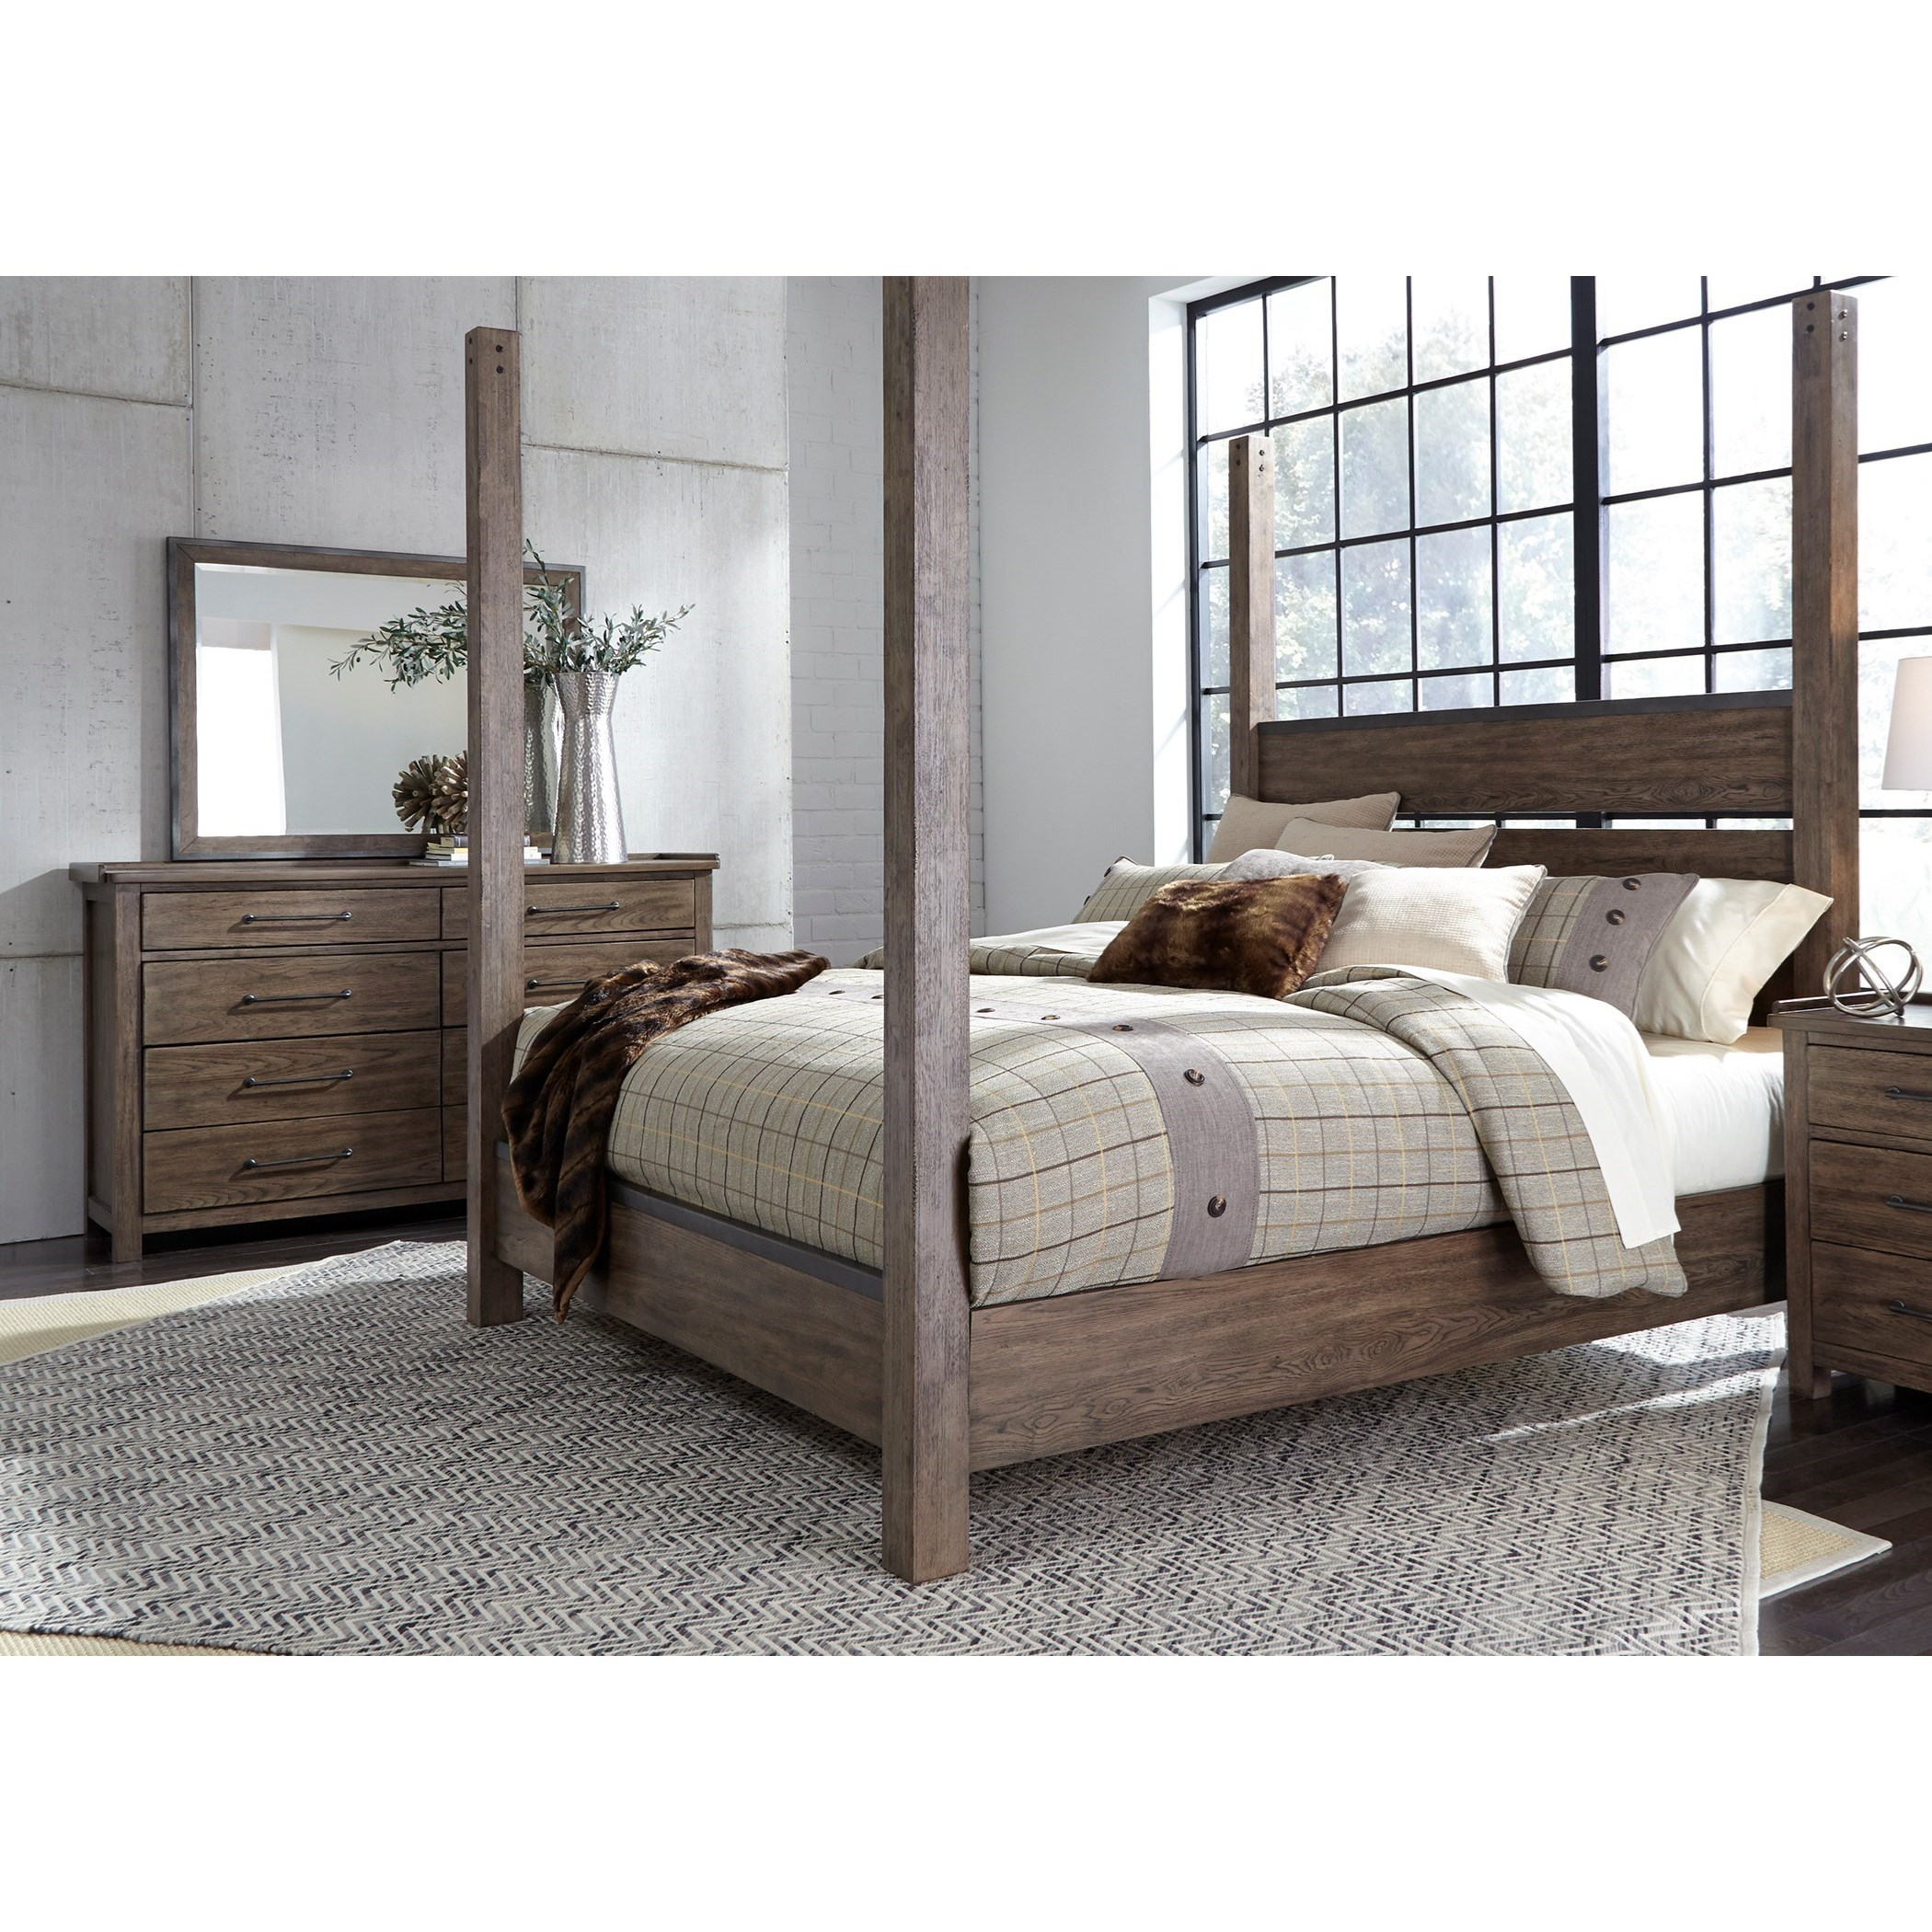 Sonoma Road California King Bedroom Group by Liberty Furniture at SuperStore